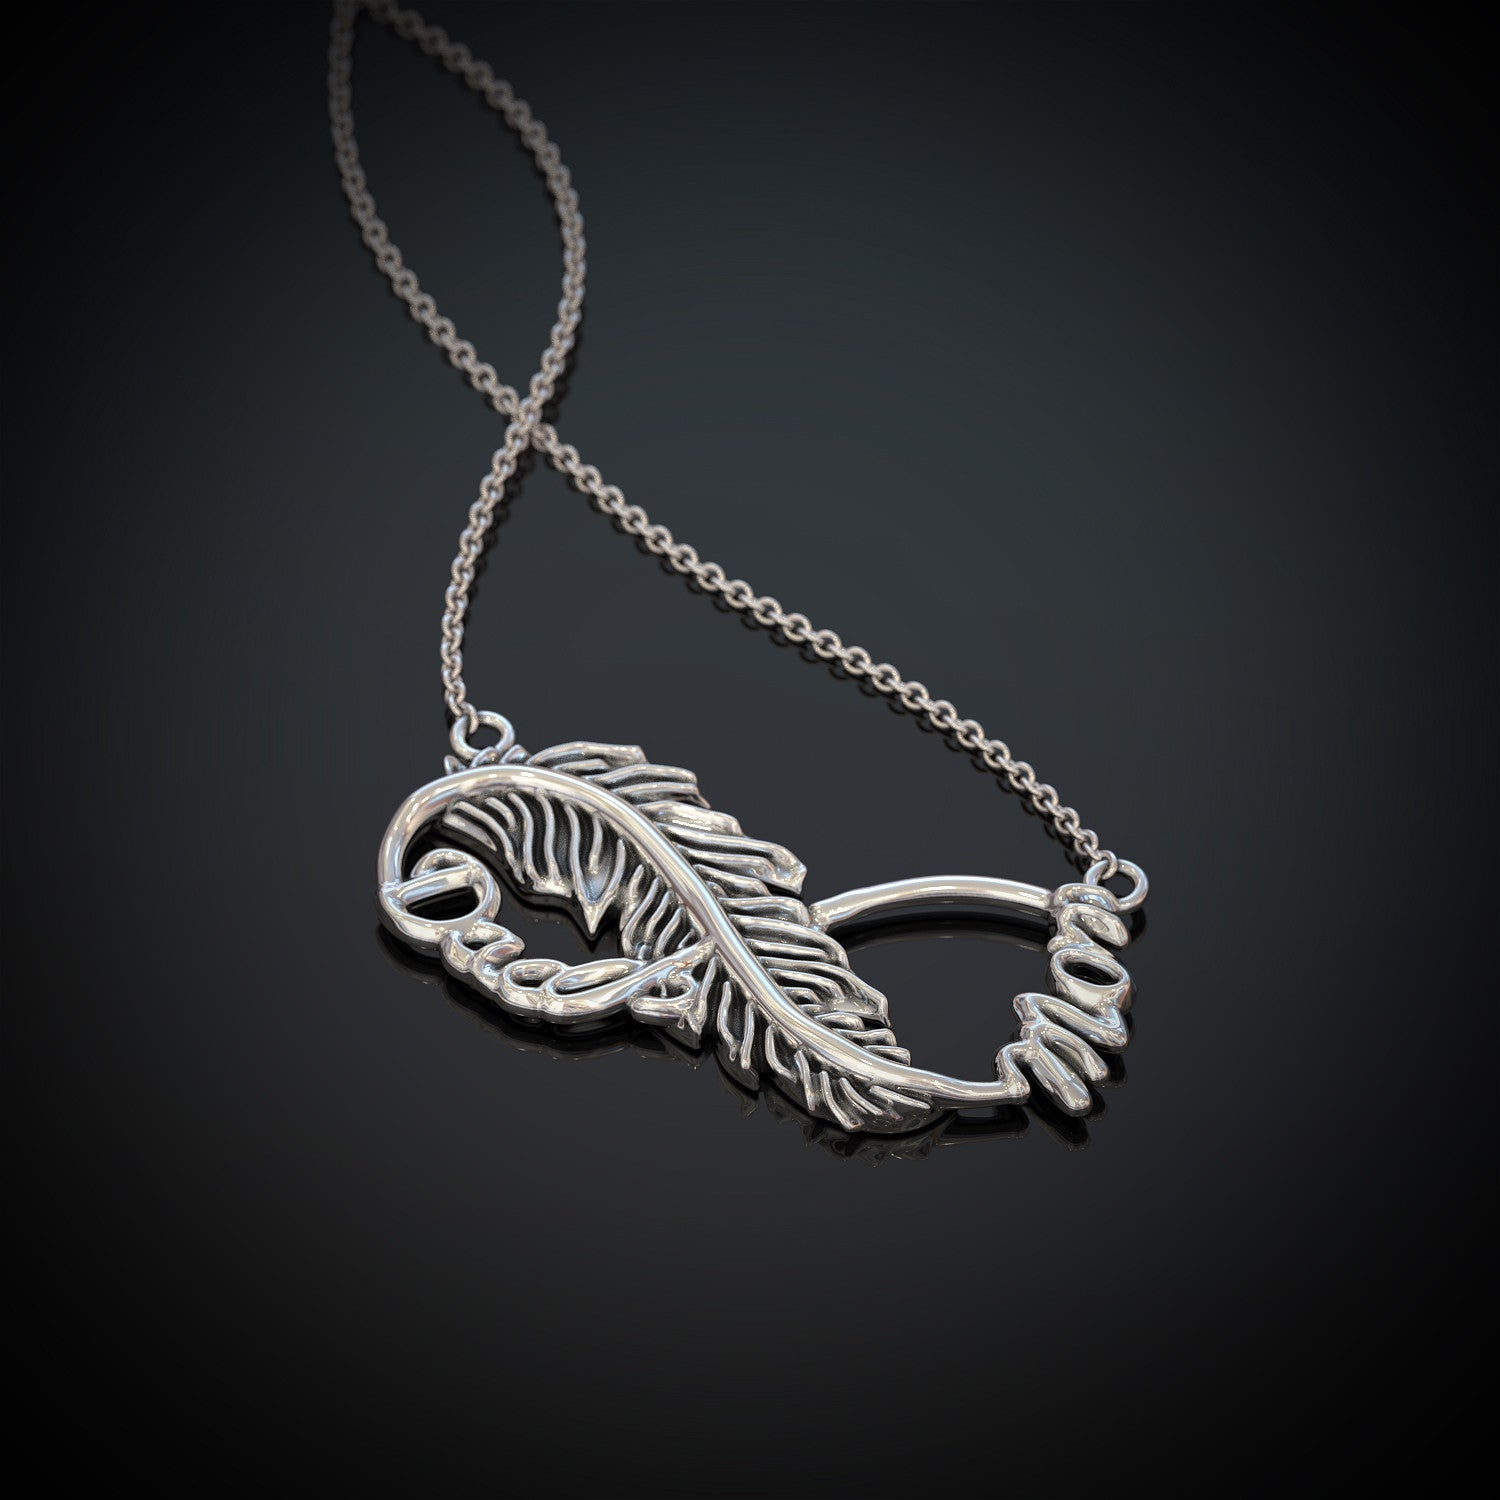 Feather Infinity Necklace